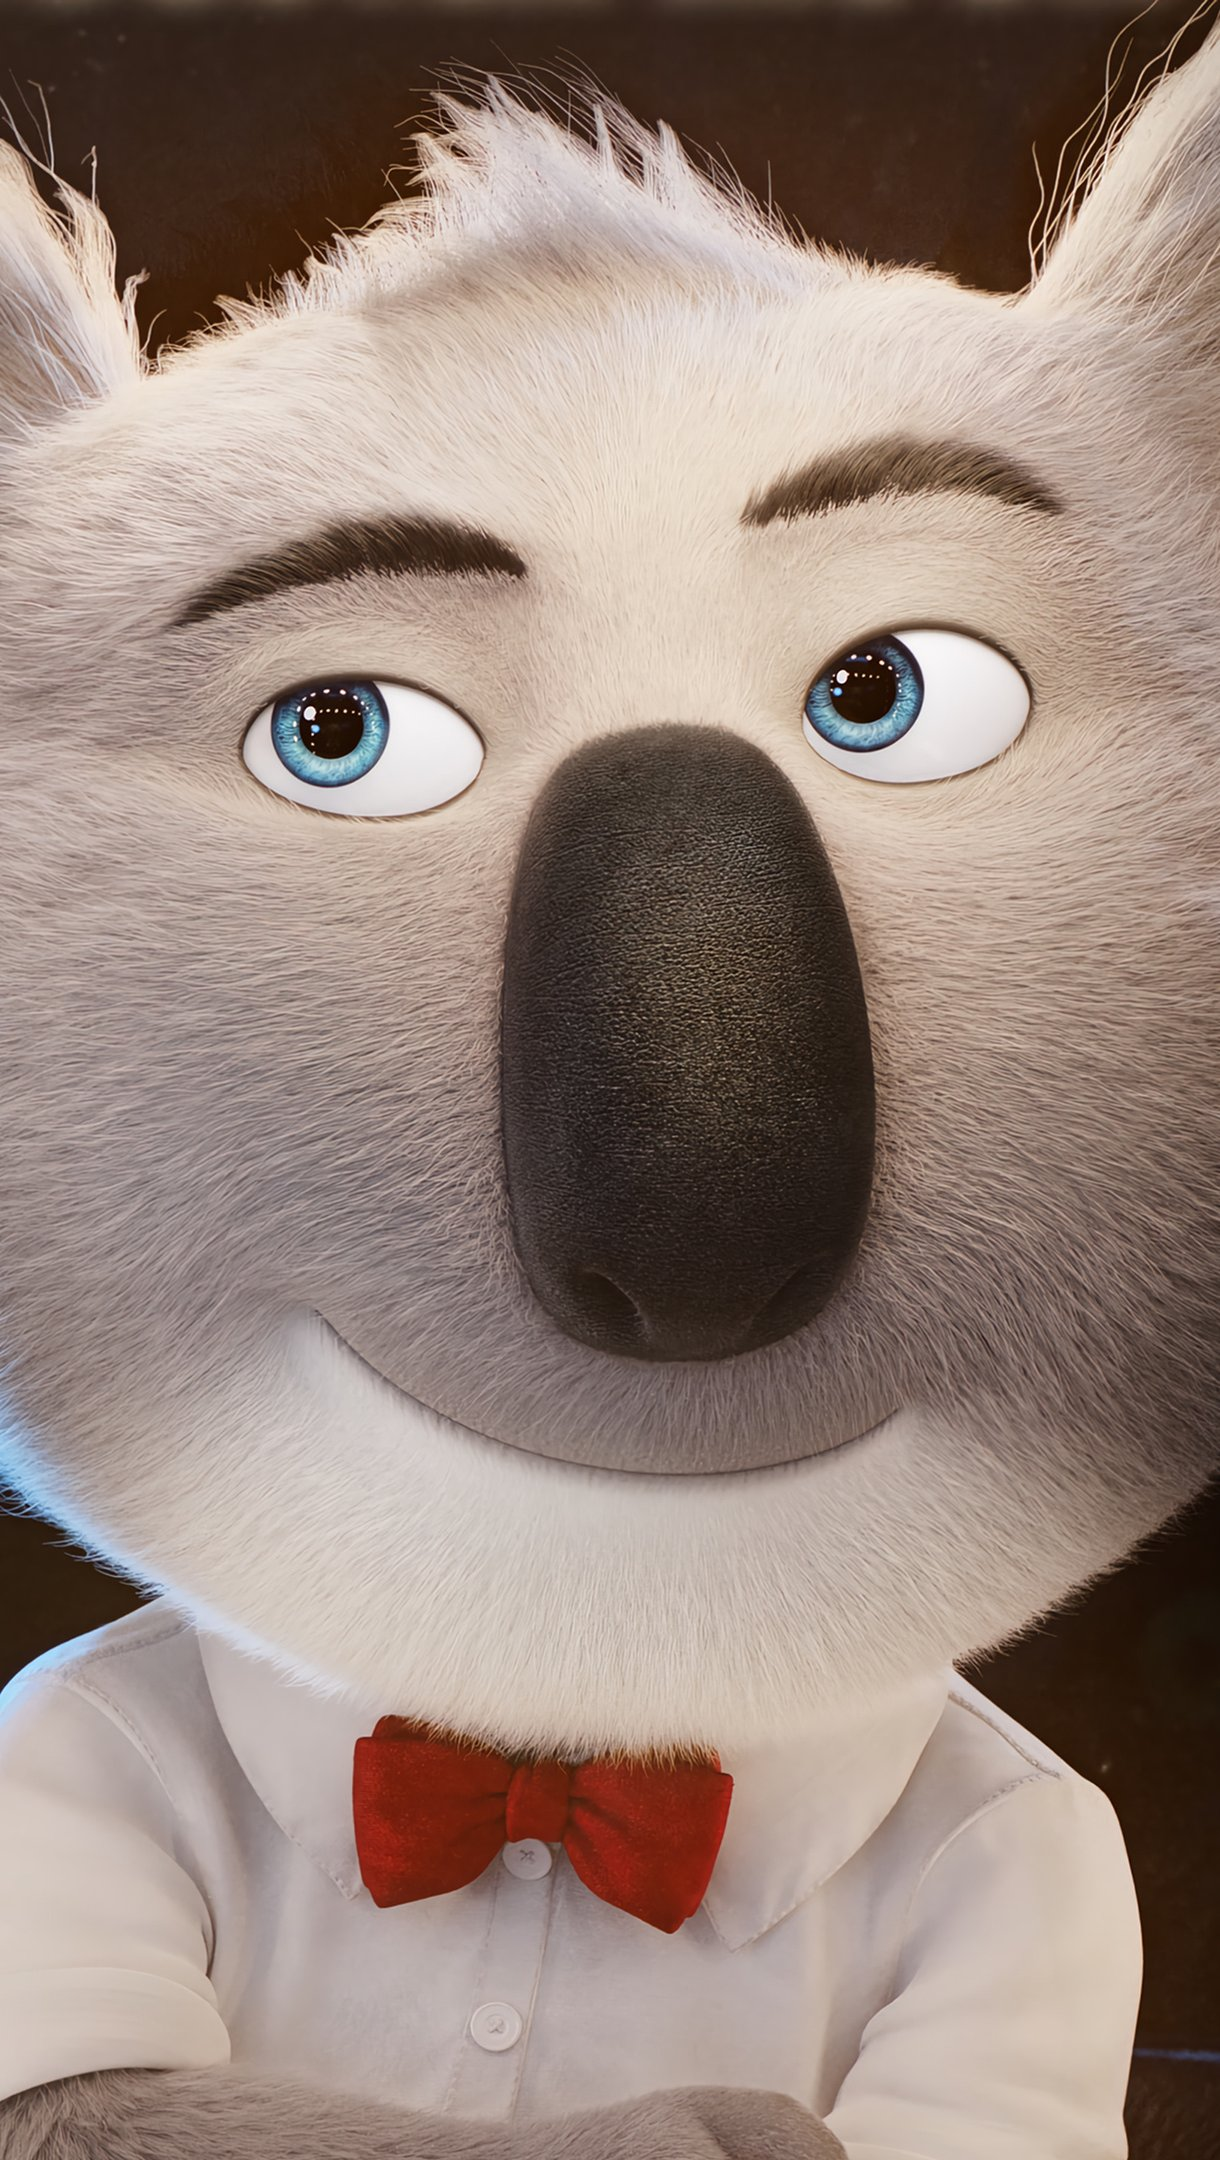 Wallpaper Buster from Sing 2 Vertical